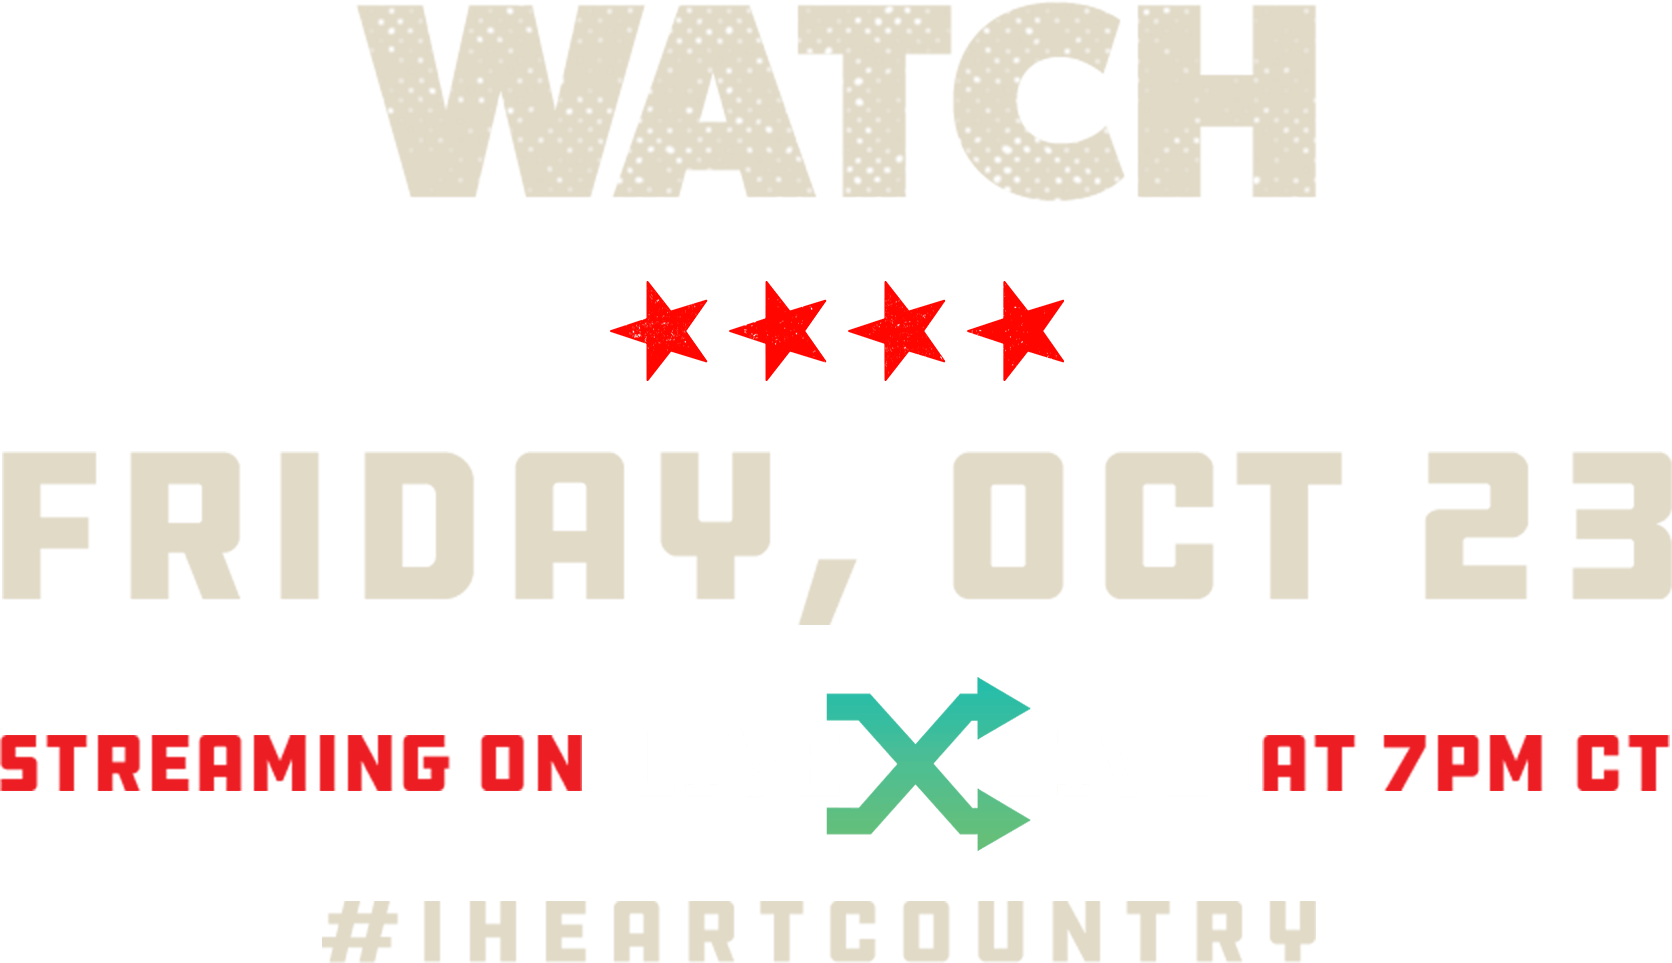 Watch Friday, Oct. 23 Streaming on LiveXLive at 7pm CT